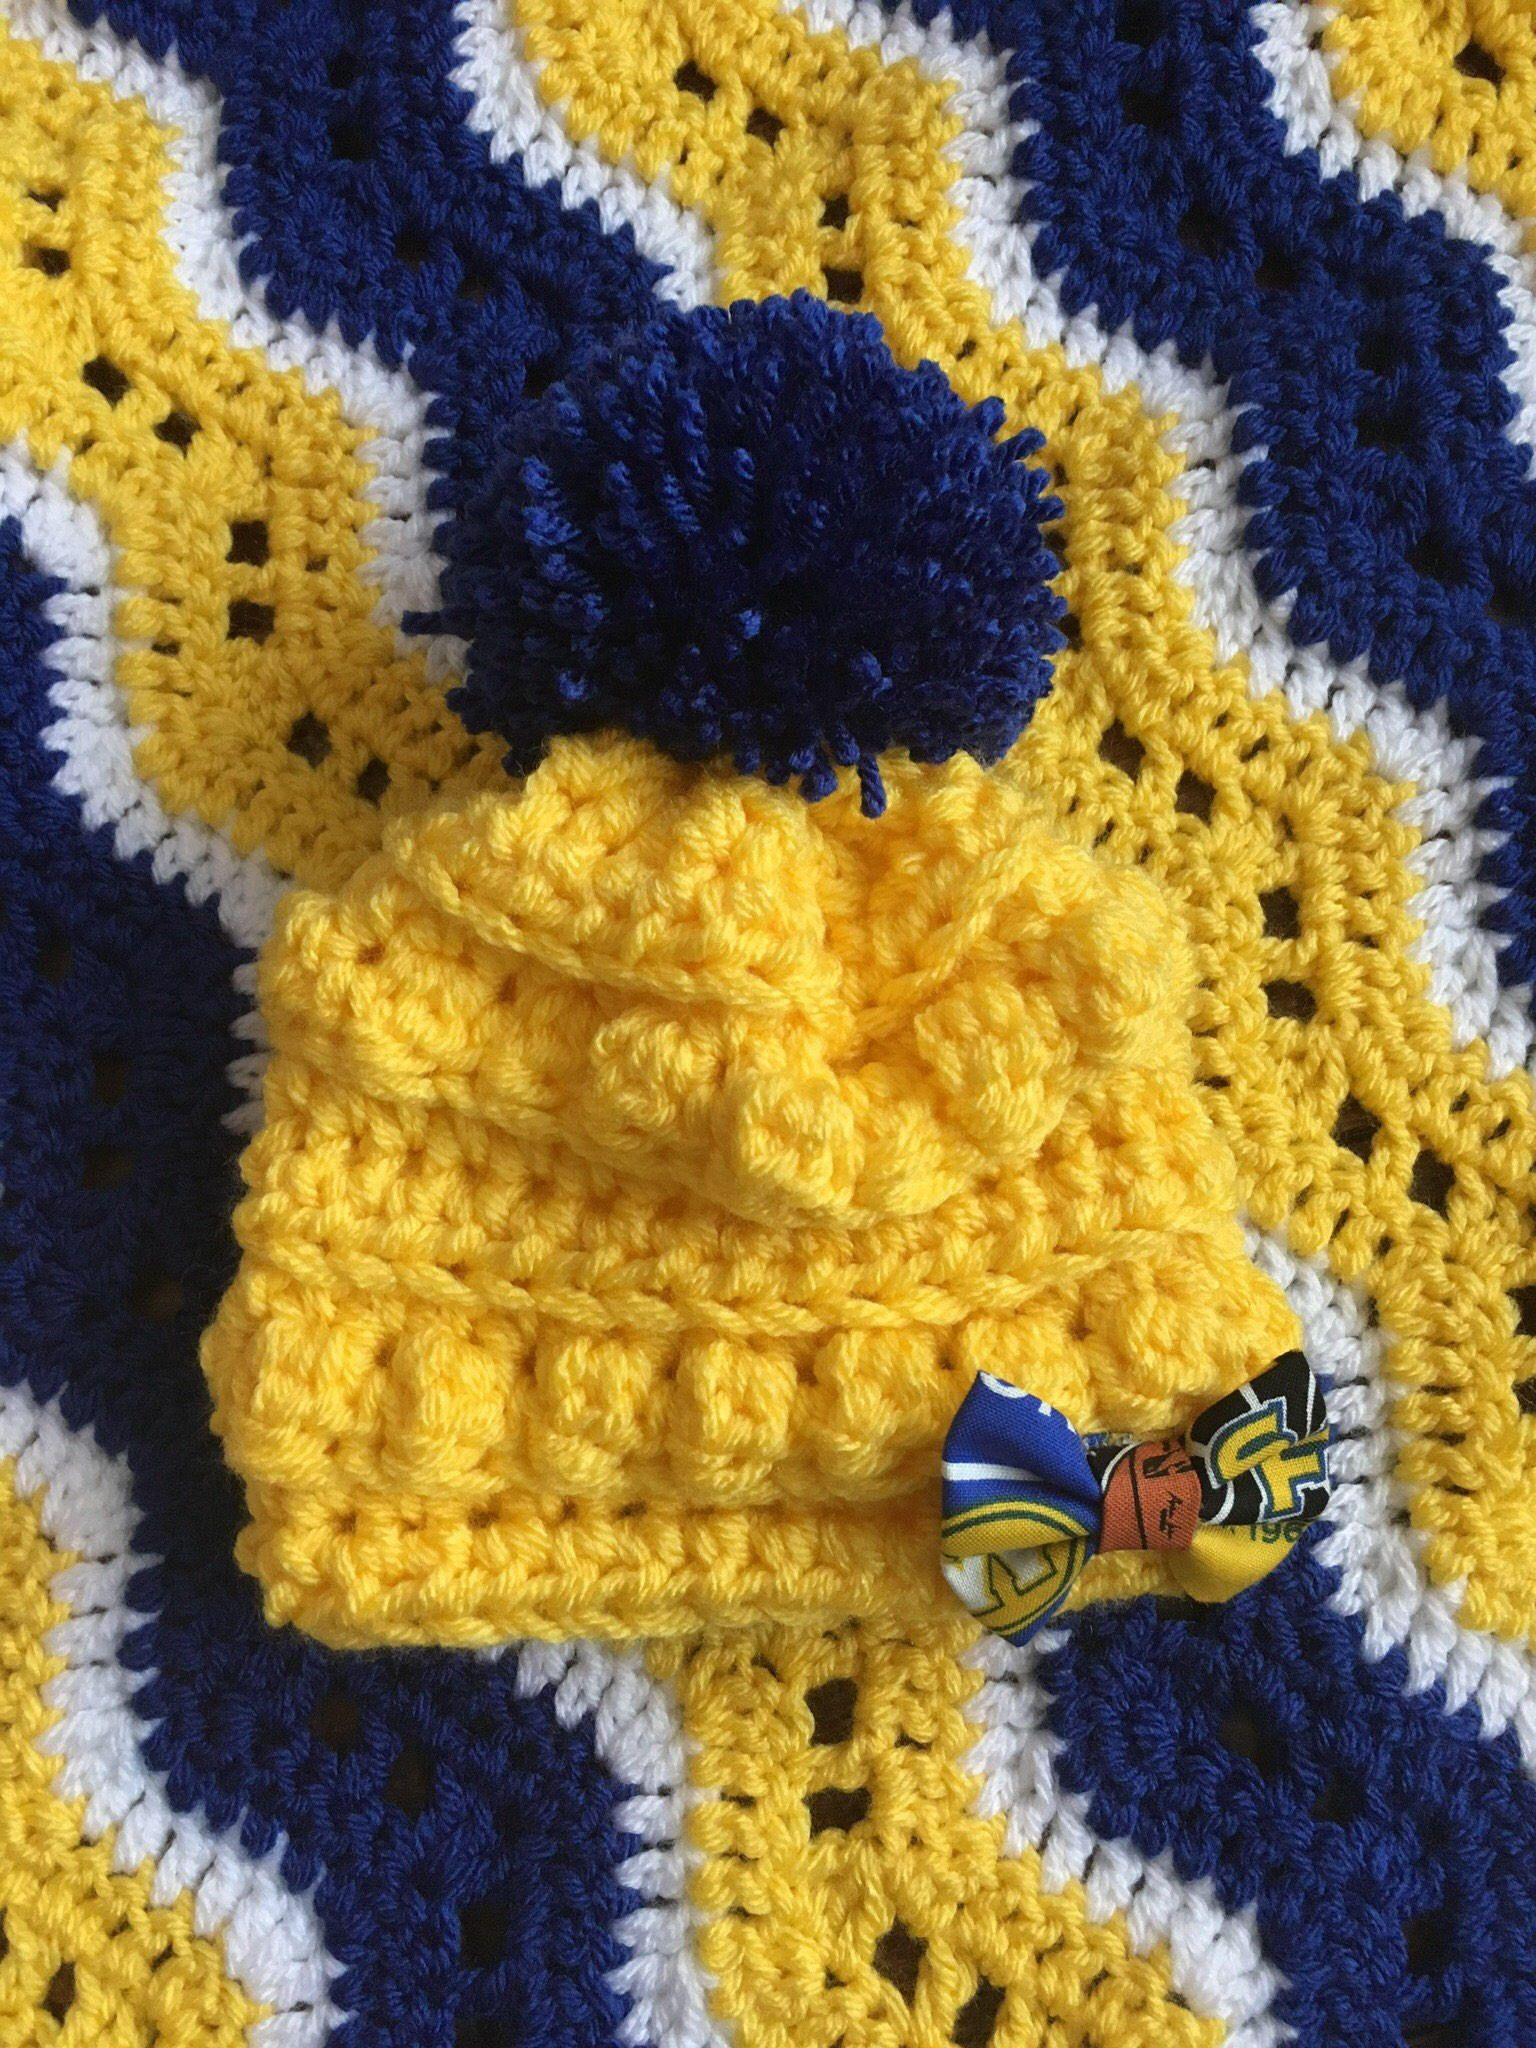 b8b4540c4dd9a8 Golden state warriors Crocheted chunky baby beanie with pom pom. Yellow hat  with blue pom